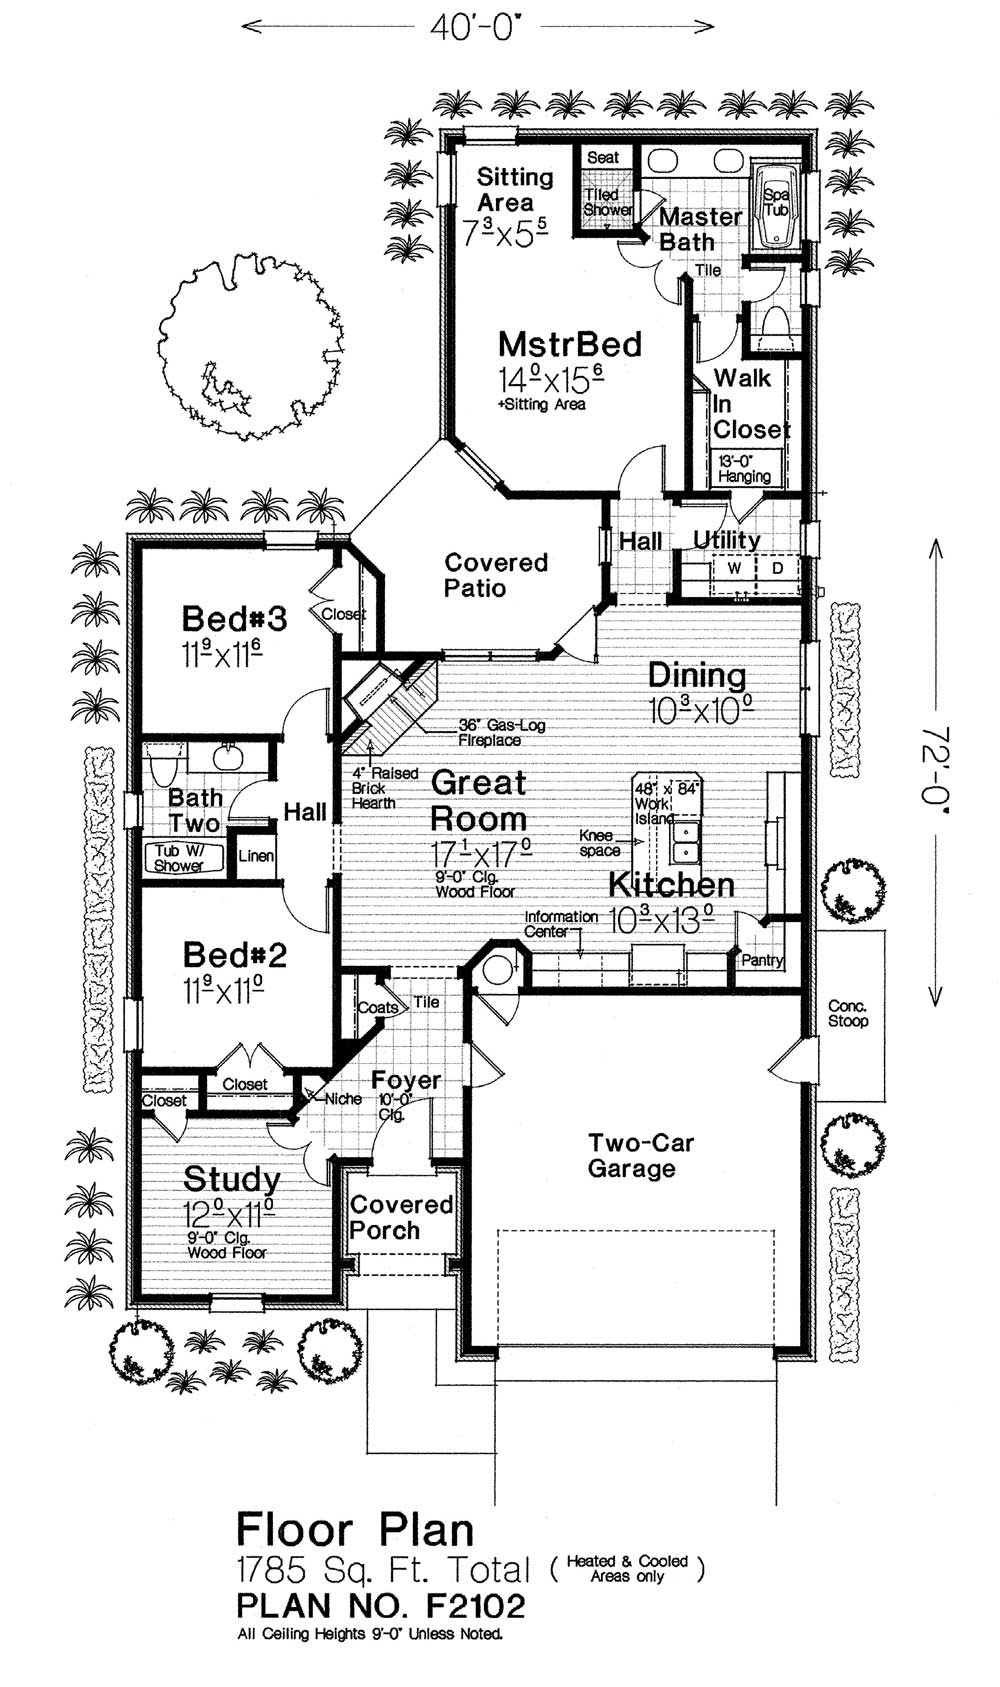 F2102 fillmore chambers design group Fillmore design floor plans